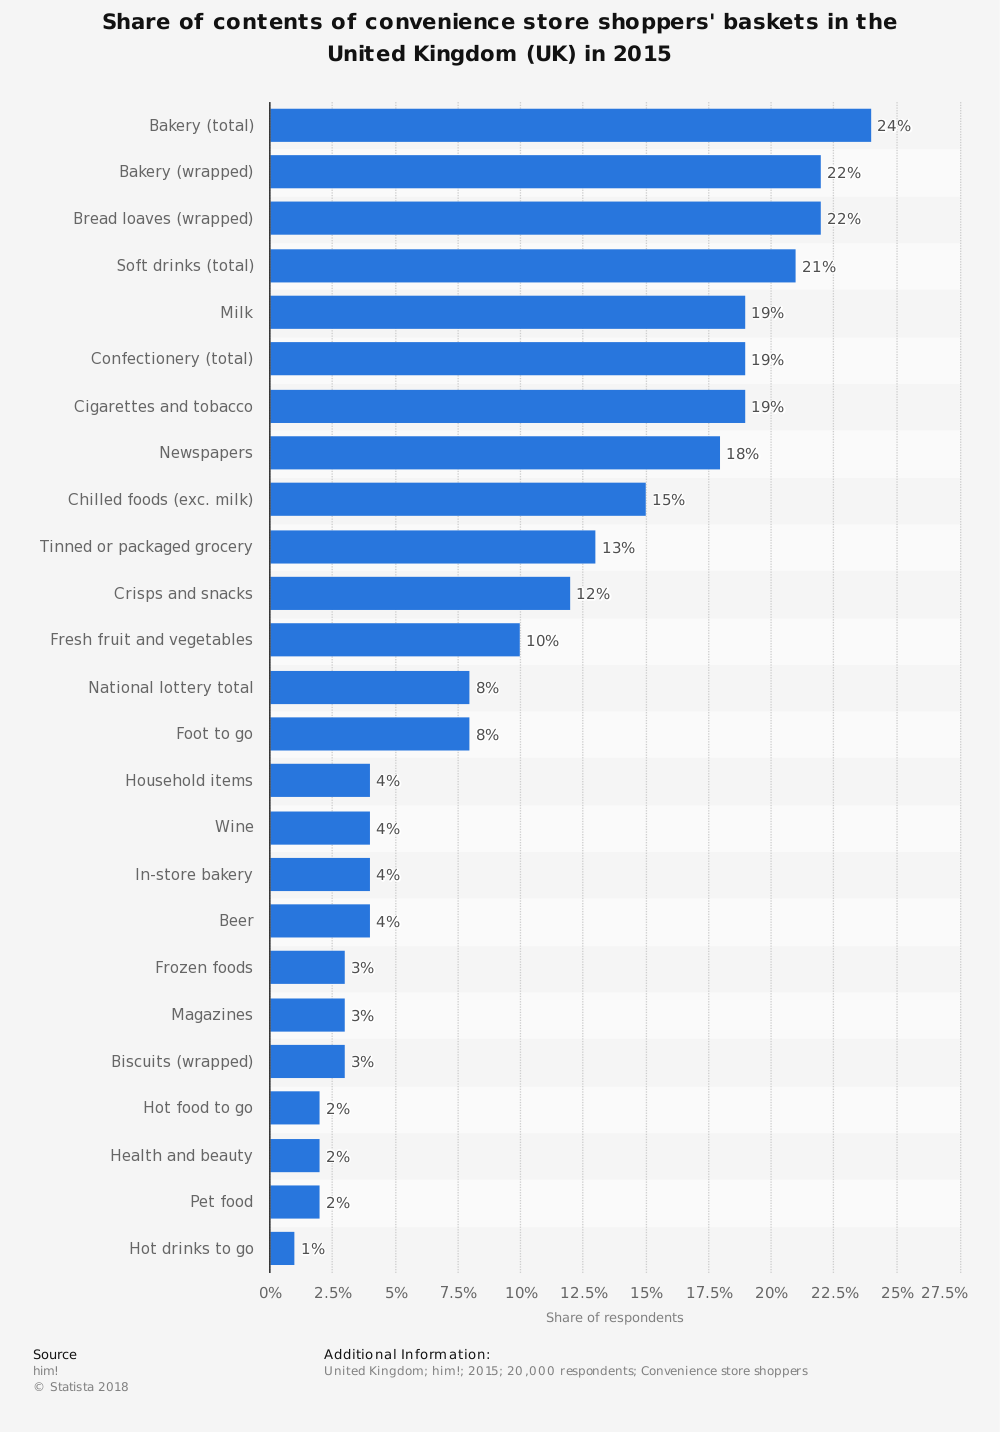 Statistic: Share of contents of convenience store shoppers' baskets in the United Kingdom (UK) in 2015 | Statista